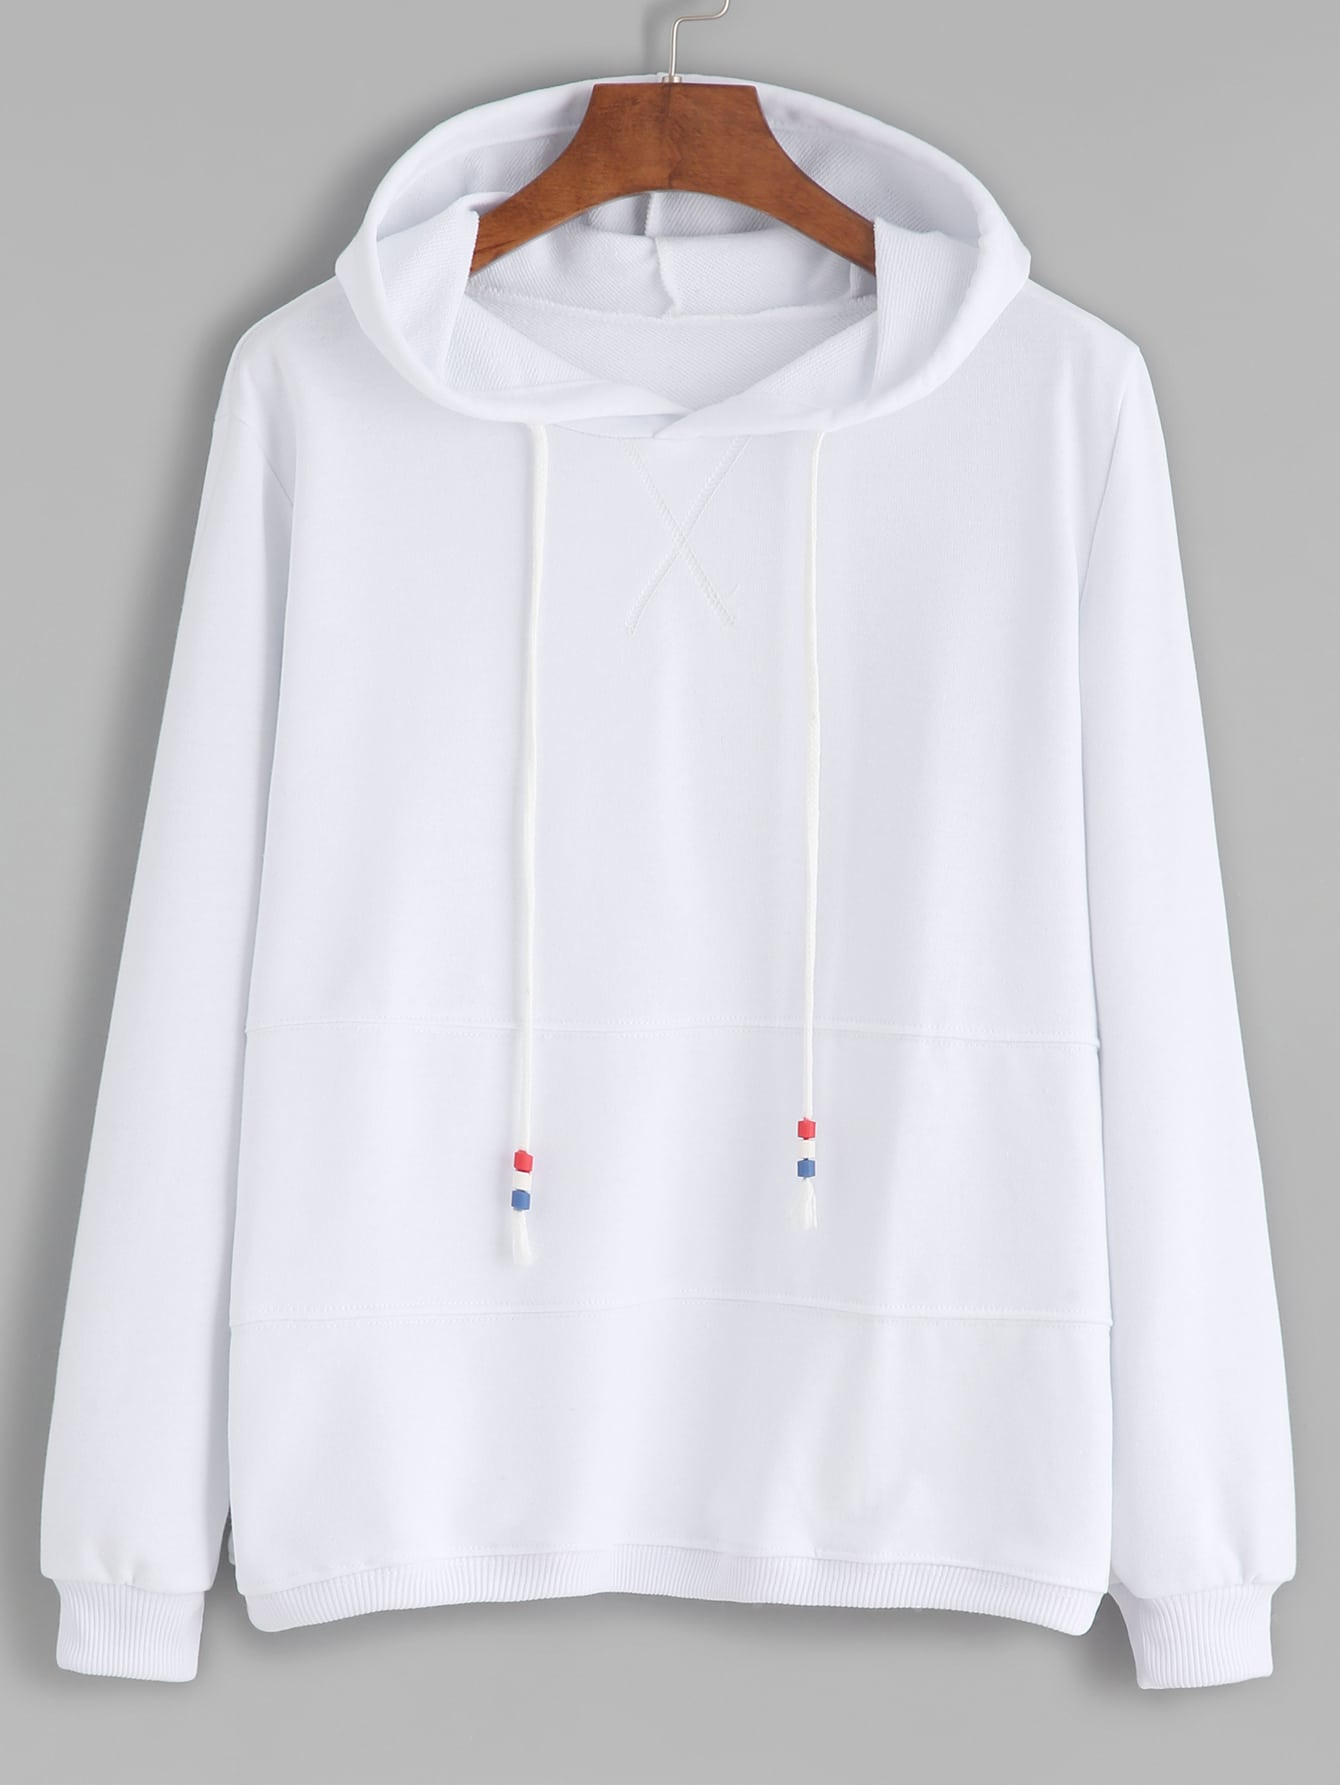 White Contrast Drawstring Hooded SweatshirtWhite Contrast Drawstring Hooded Sweatshirt<br><br>color: White<br>size: one-size